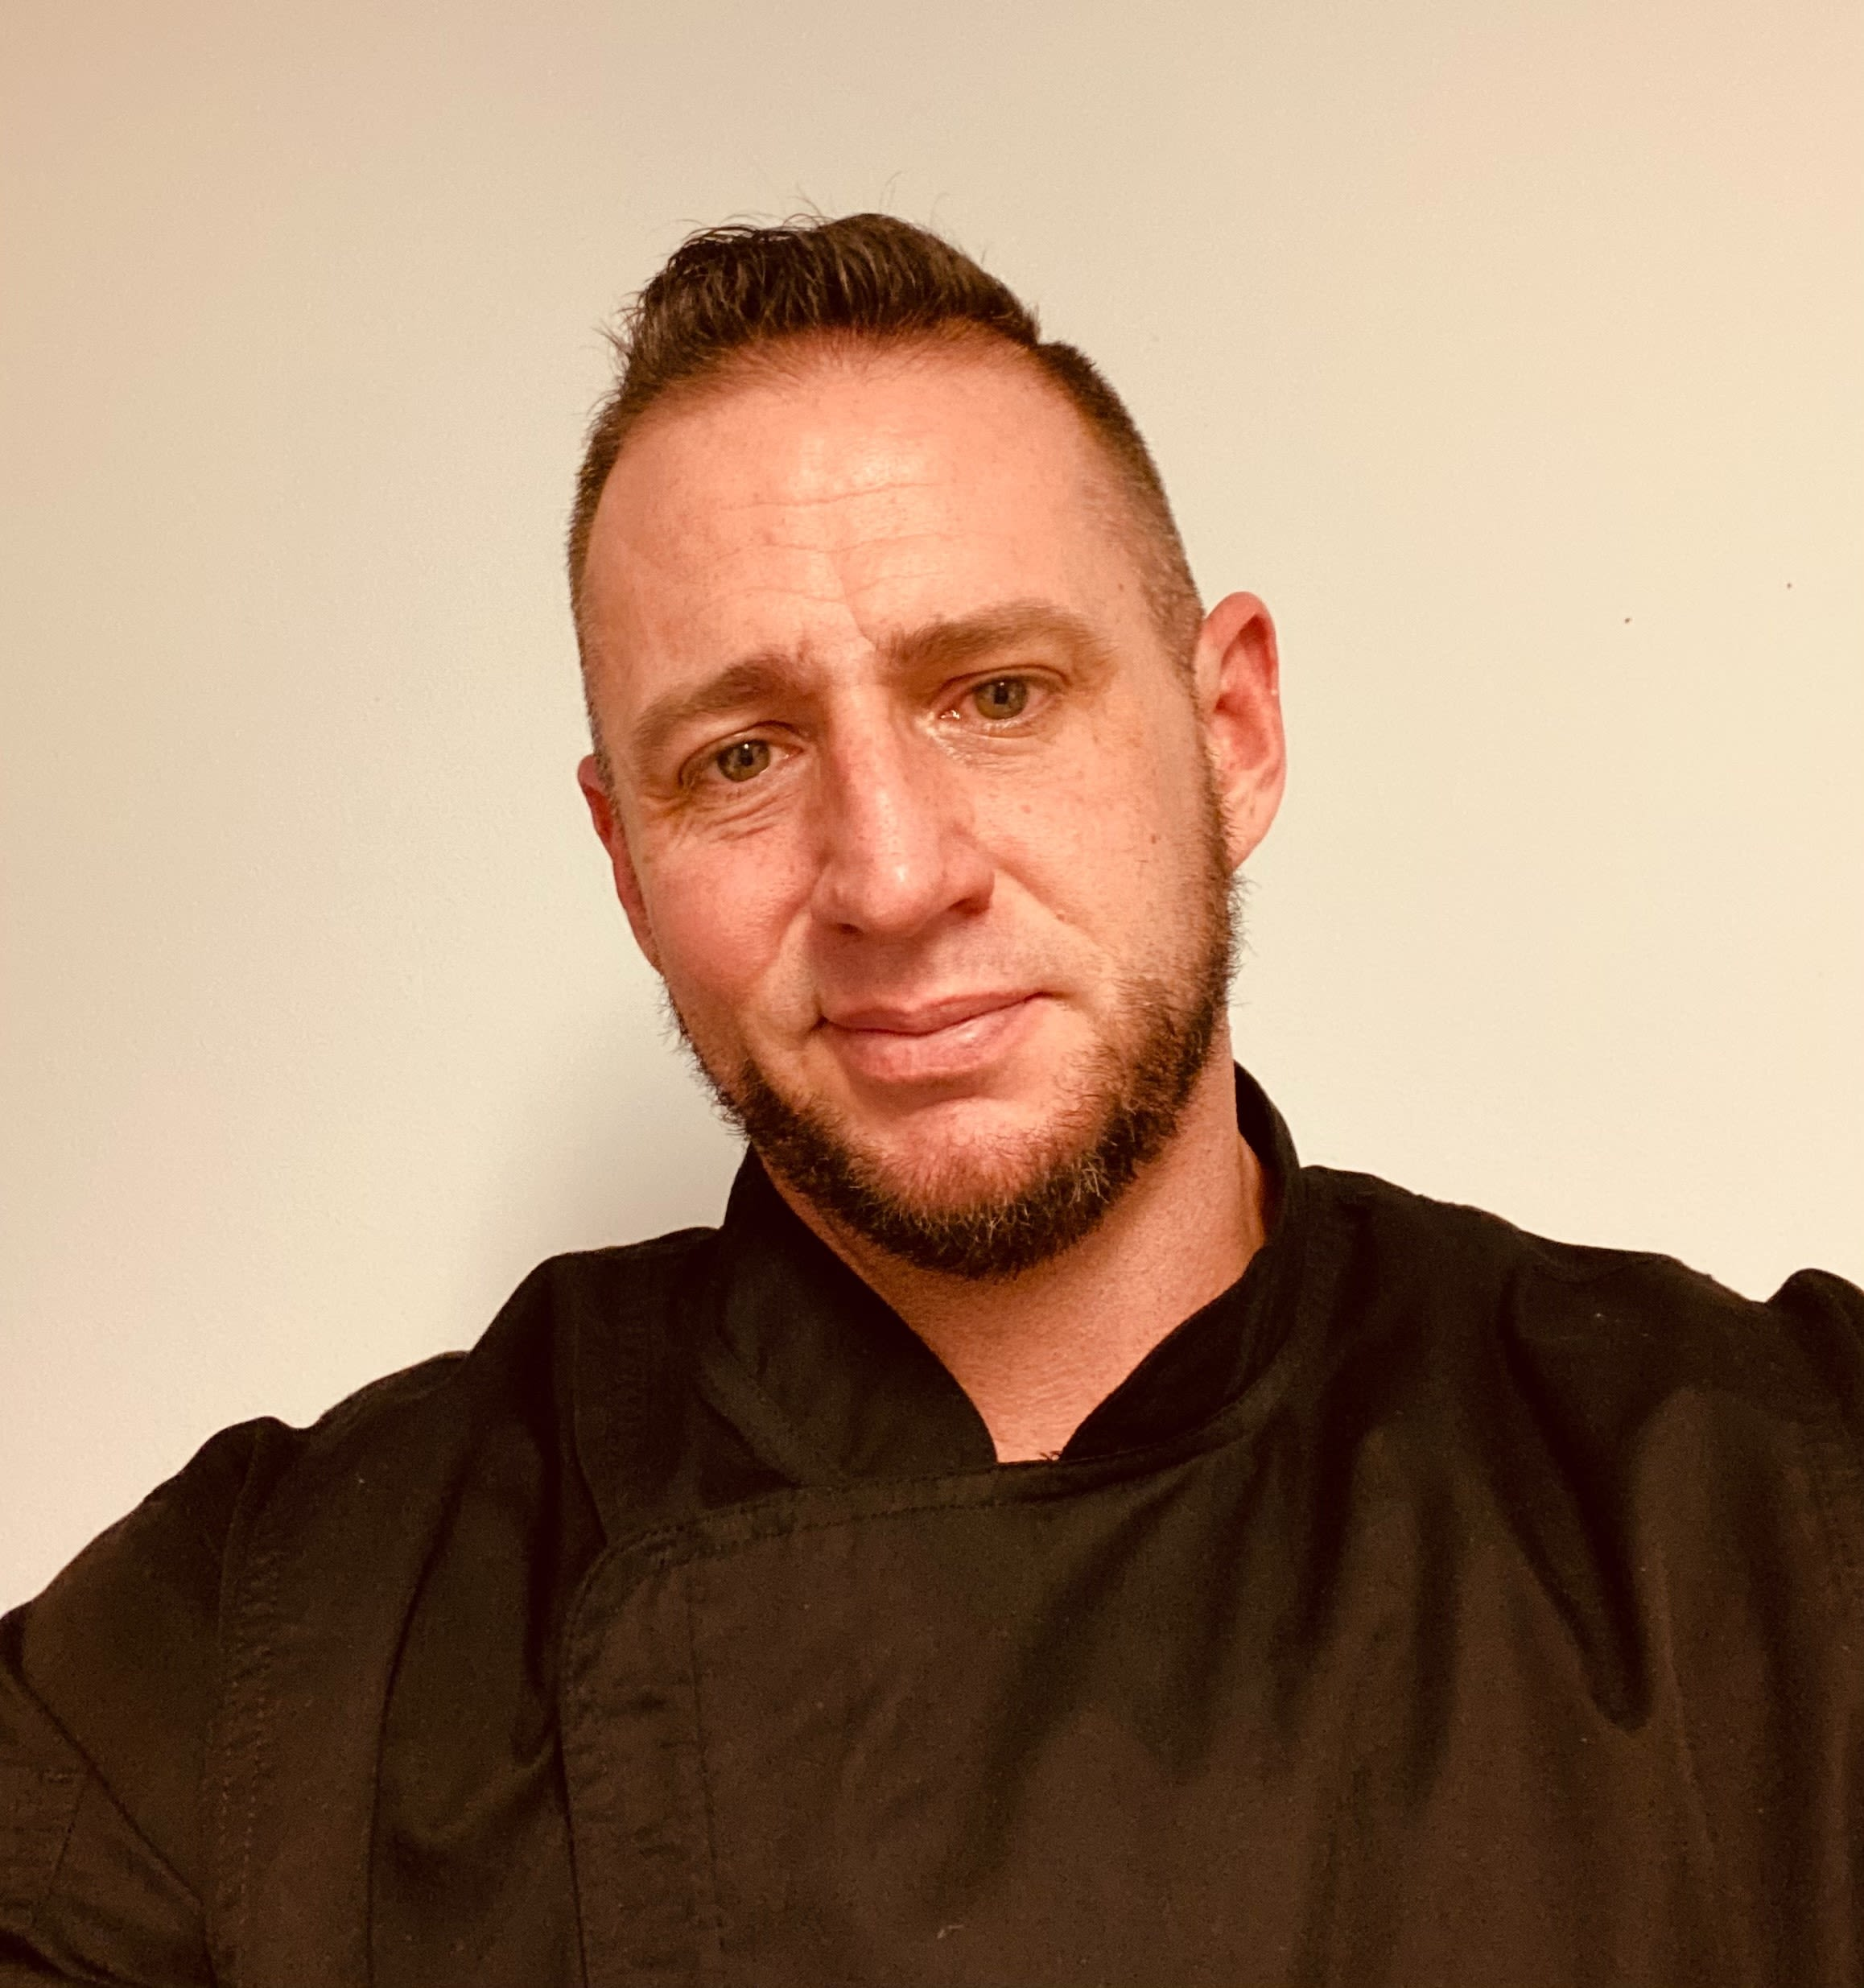 Matthew Miller, Culinary Director of Keystone Place at Legacy Ridge in Westminster, Colorado